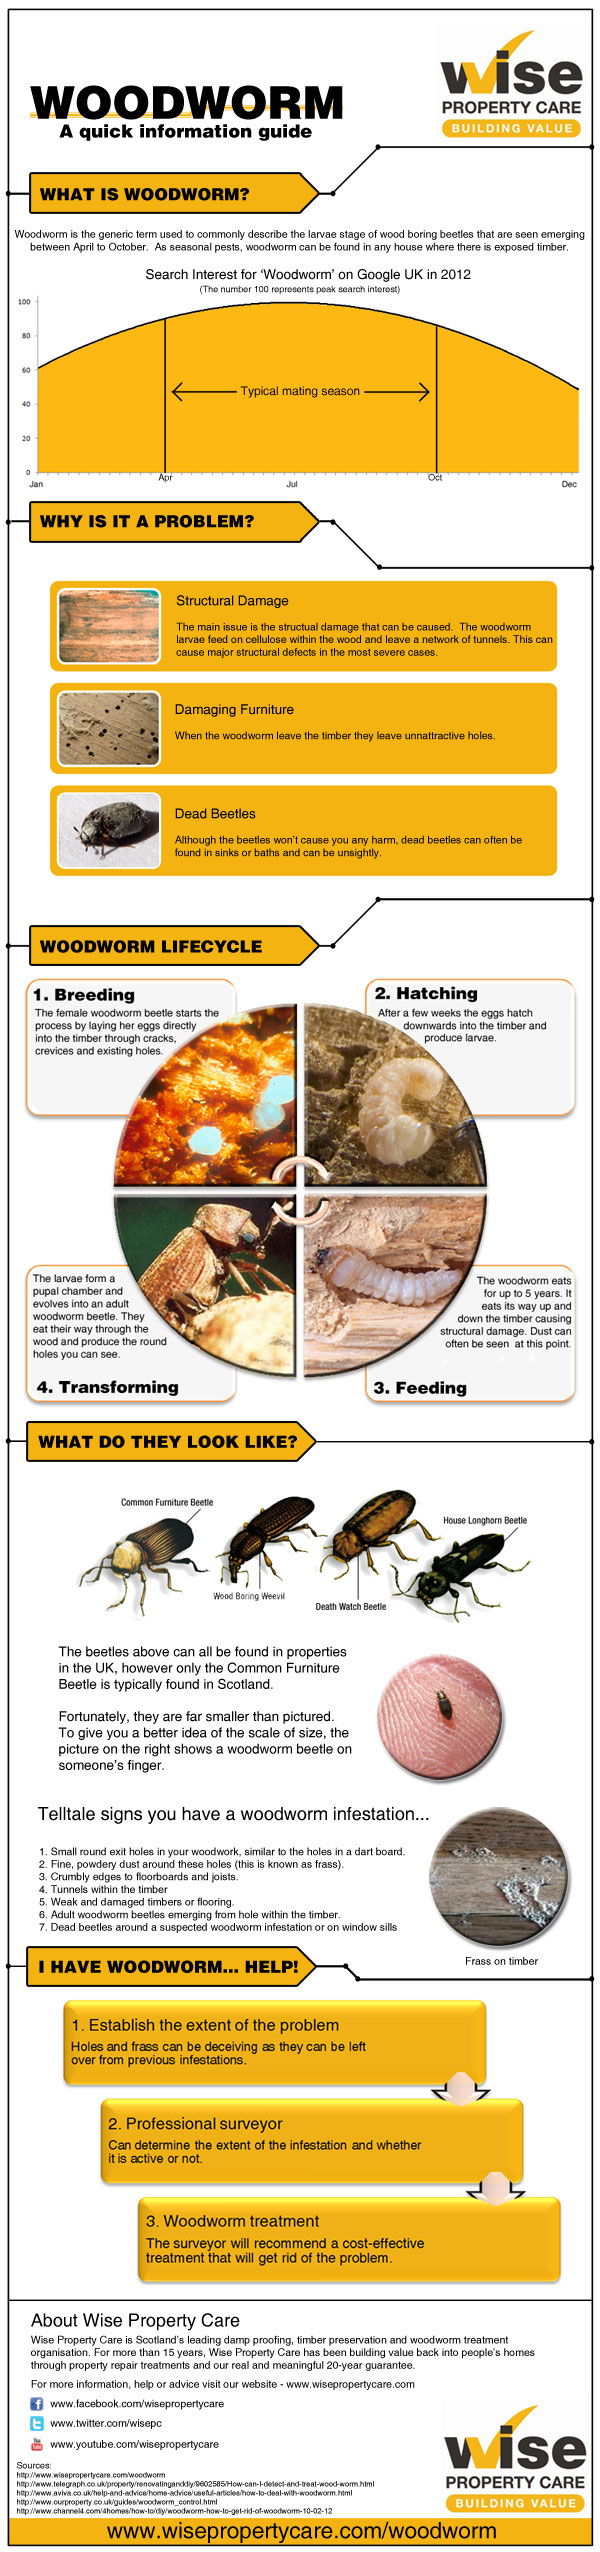 woodworm infographic small Woodworm is Active in the Summer